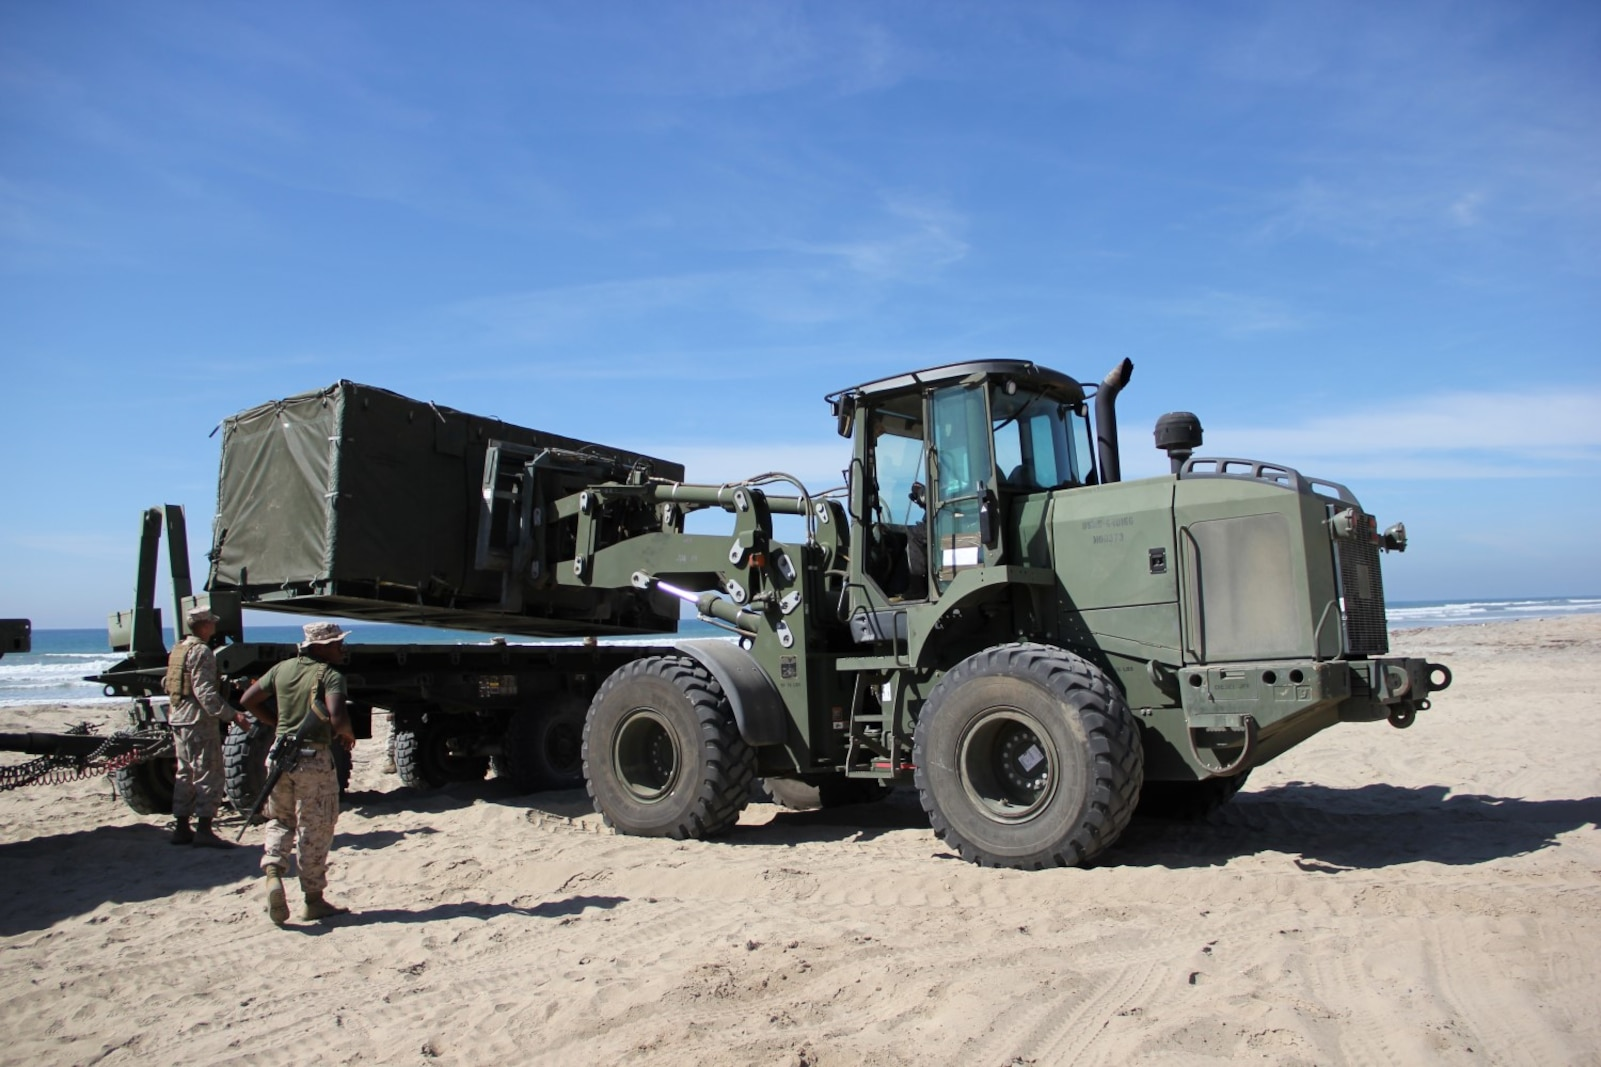 Marines with Marine Wing Support Squadron 373 unload components of the Tactical Water Purification System during exercise Pacific Horizon 2015 at Marine Corps Base Camp Pendleton, Calif., Oct. 22. PH 15 increases the ability of 1st Marine Expeditionary Brigade and Expeditionary Strike Group 3 to plan, communicate and conduct complex sea and shore based operations in response to natural disasters. (U.S. Marine Corps photo by Lance Cpl. Caitlin Bevel)